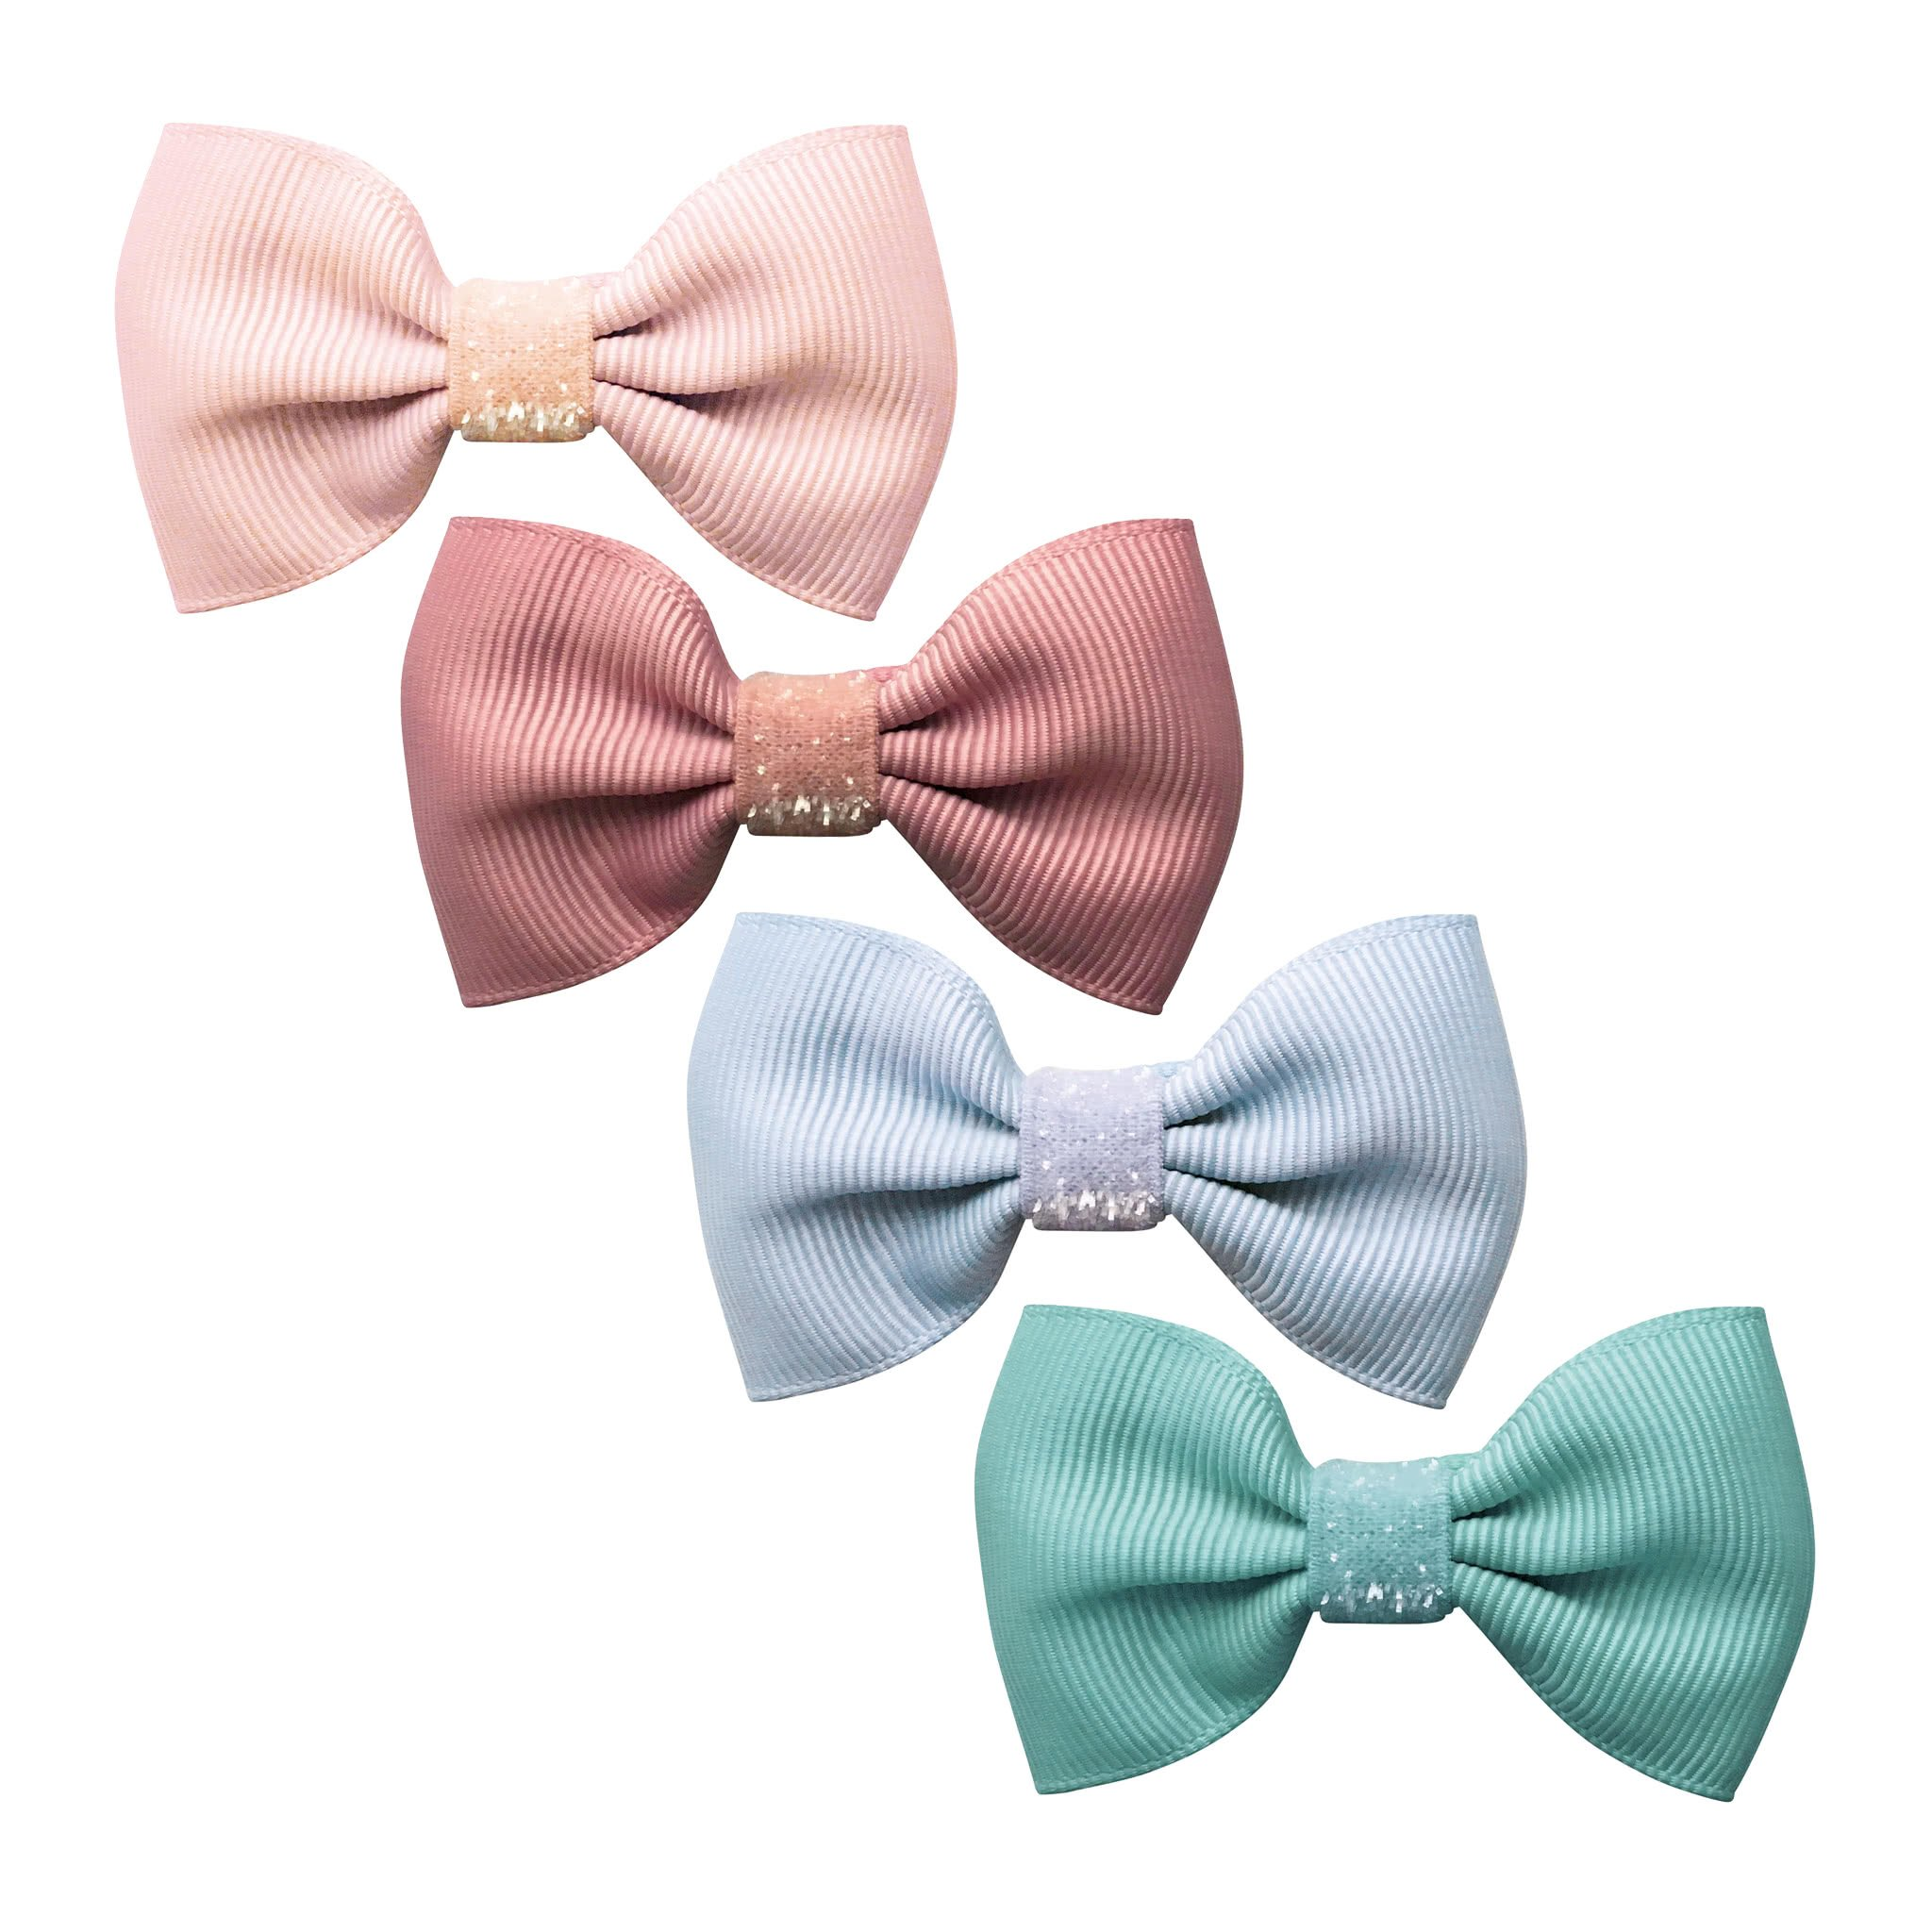 Image of Milledeux® Gift set - 4 Small bowtie bows - Colored Glitter - A131